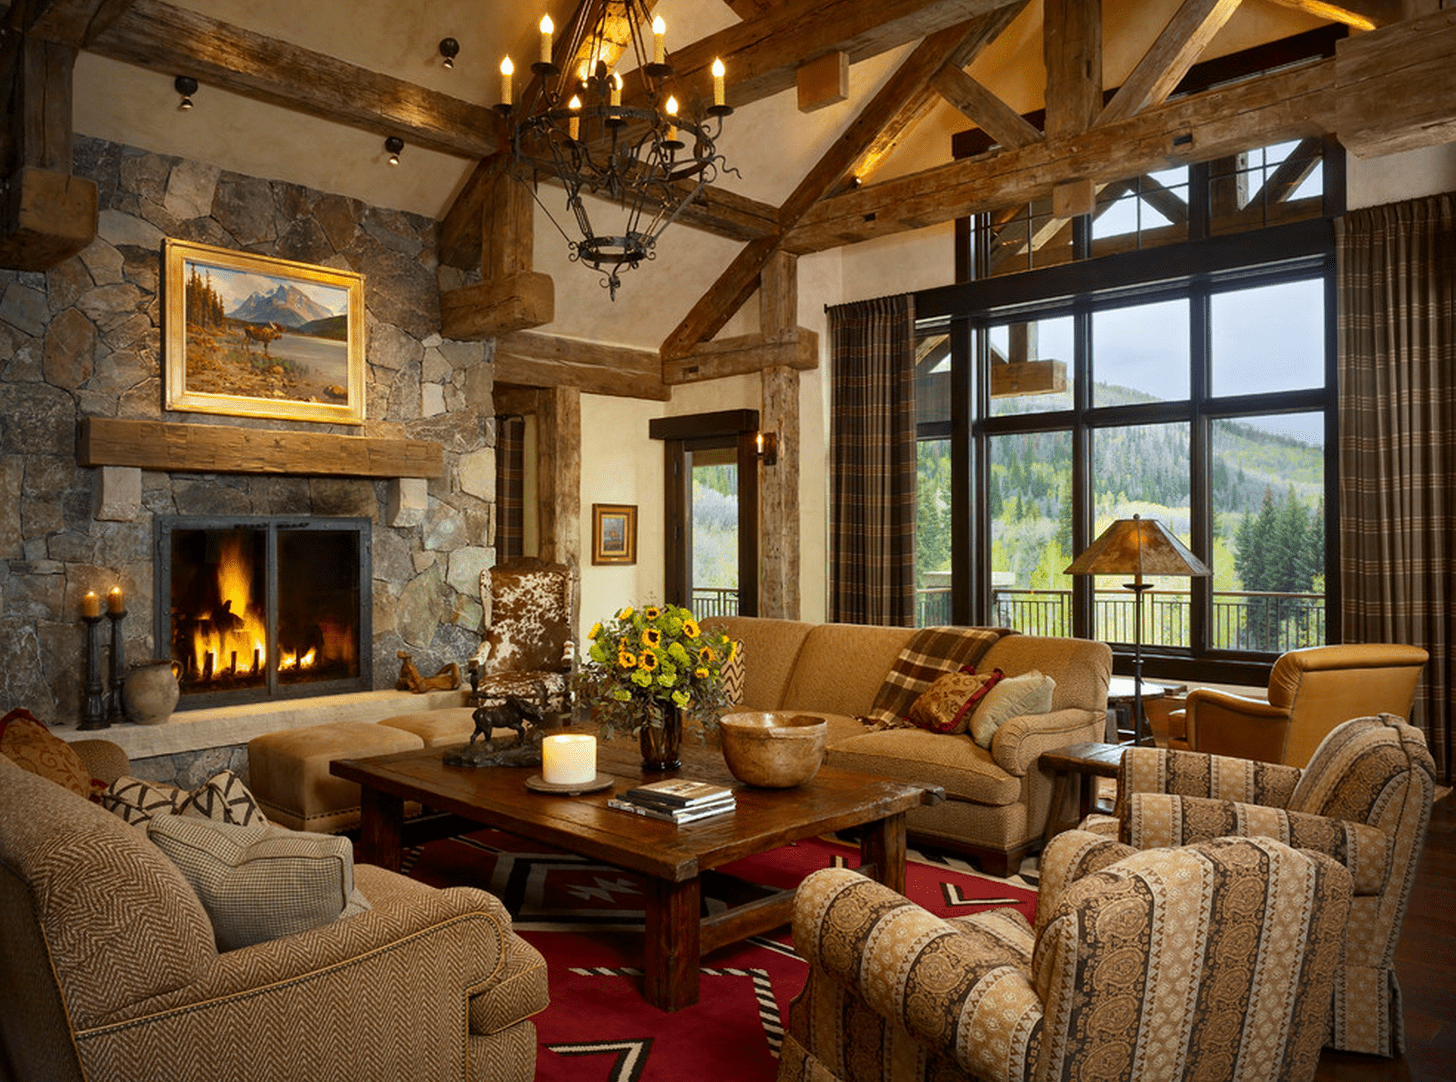 Cozy Living Room With Fireplace 21 cozy living room design ideas